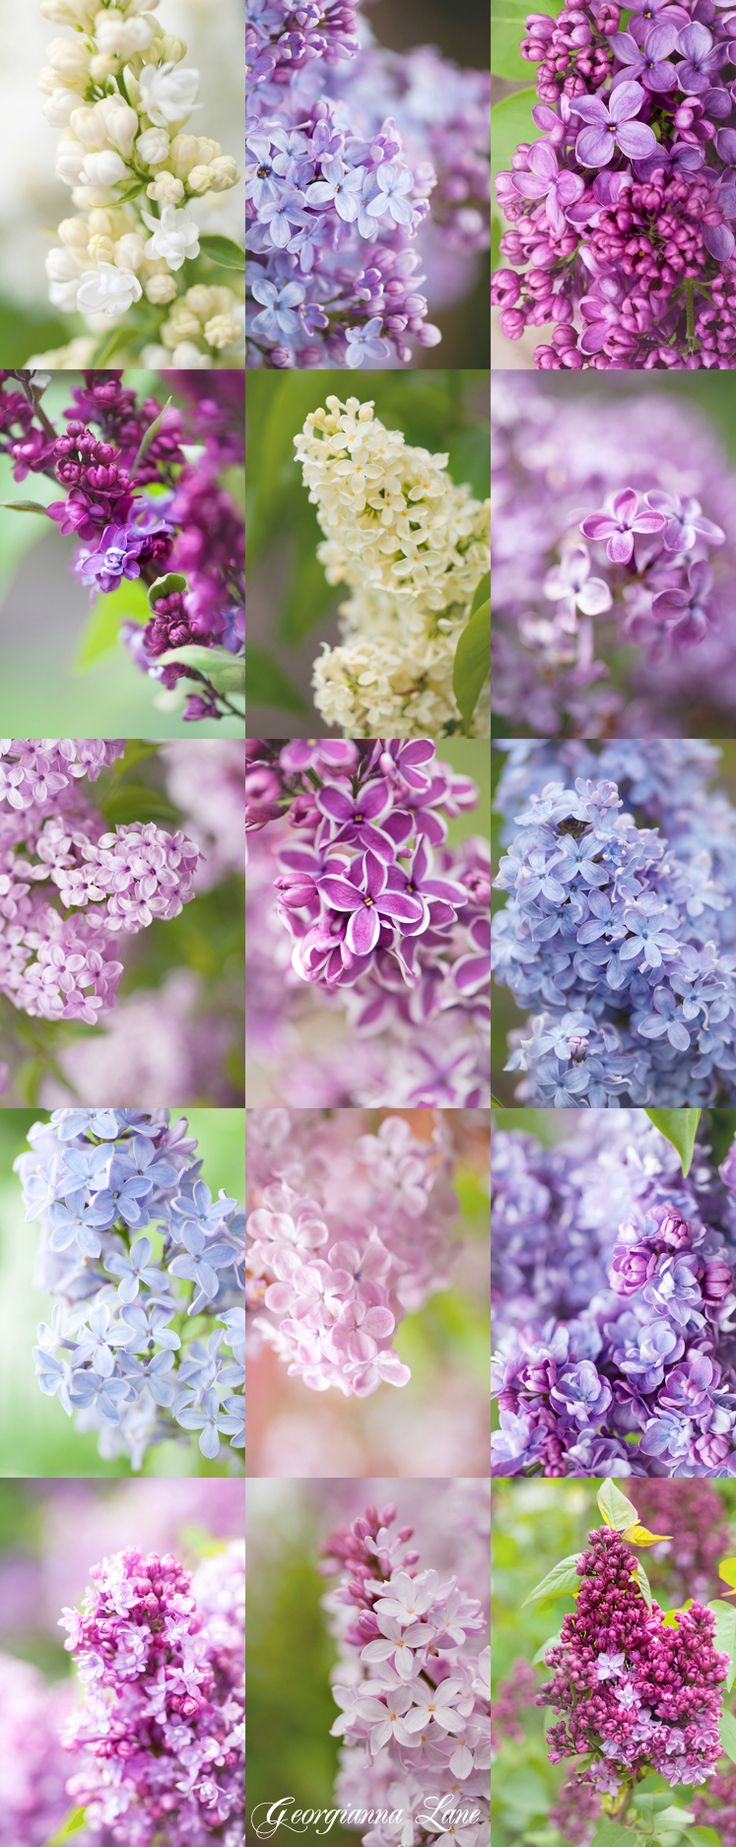 ~~Syringa: New Lilac Collection! | Left to right: Syringa vulgaris 'Mme Lemoine', 'Firmament',  'Glory', 'Adelaide Dunbar',  'Primrose', Syringa x hyacinthiflora 'Pocohontas', Syringa x chinensis 'Lilac Sunday', 'Sensation', 'Mme Charles Souchet',  'President Lincoln', Syringa x hyacinthiflora 'Maiden's Blush', 'Alice Christianson', Syringa 'Fritz Klager', Syringa 'Pink Ruth', 'Peacock' | Garden Photo World~~